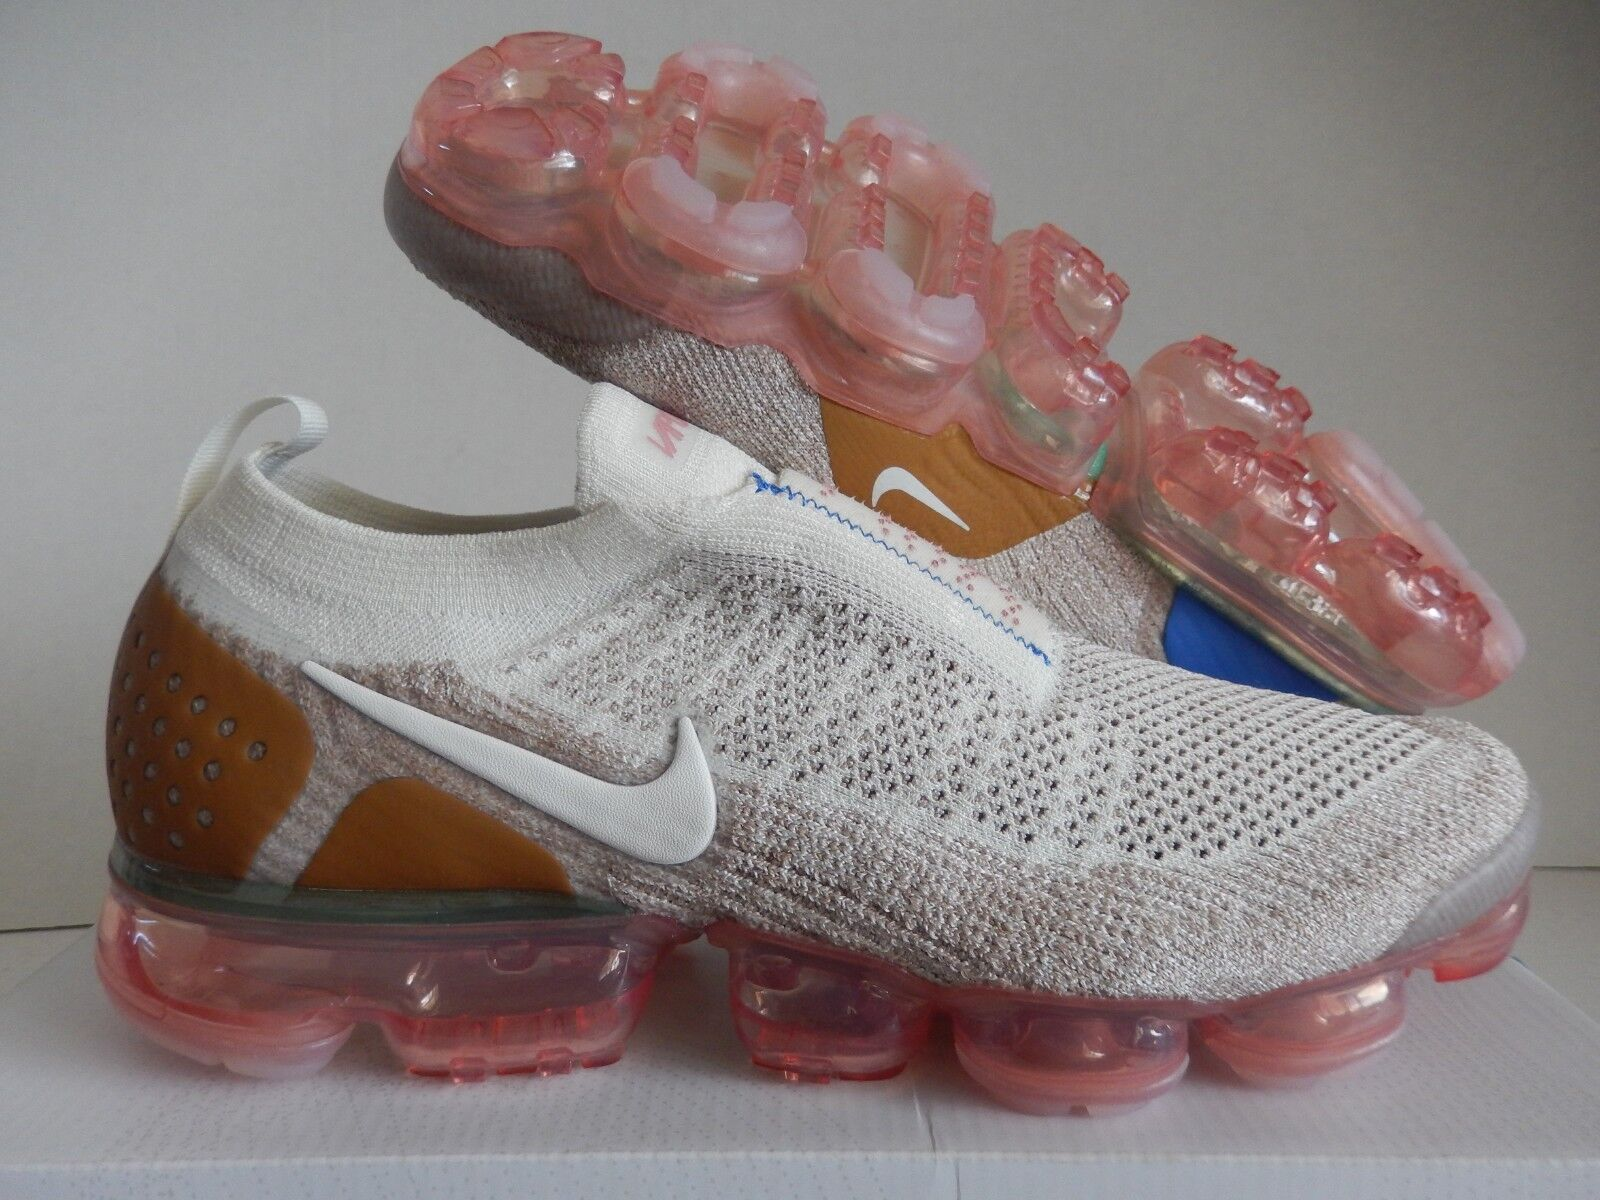 606da3198864c Nike Air Vapormax Flyknit MOC 2 Unisex Shoes Sail   Wheat Ah7006-100 ...